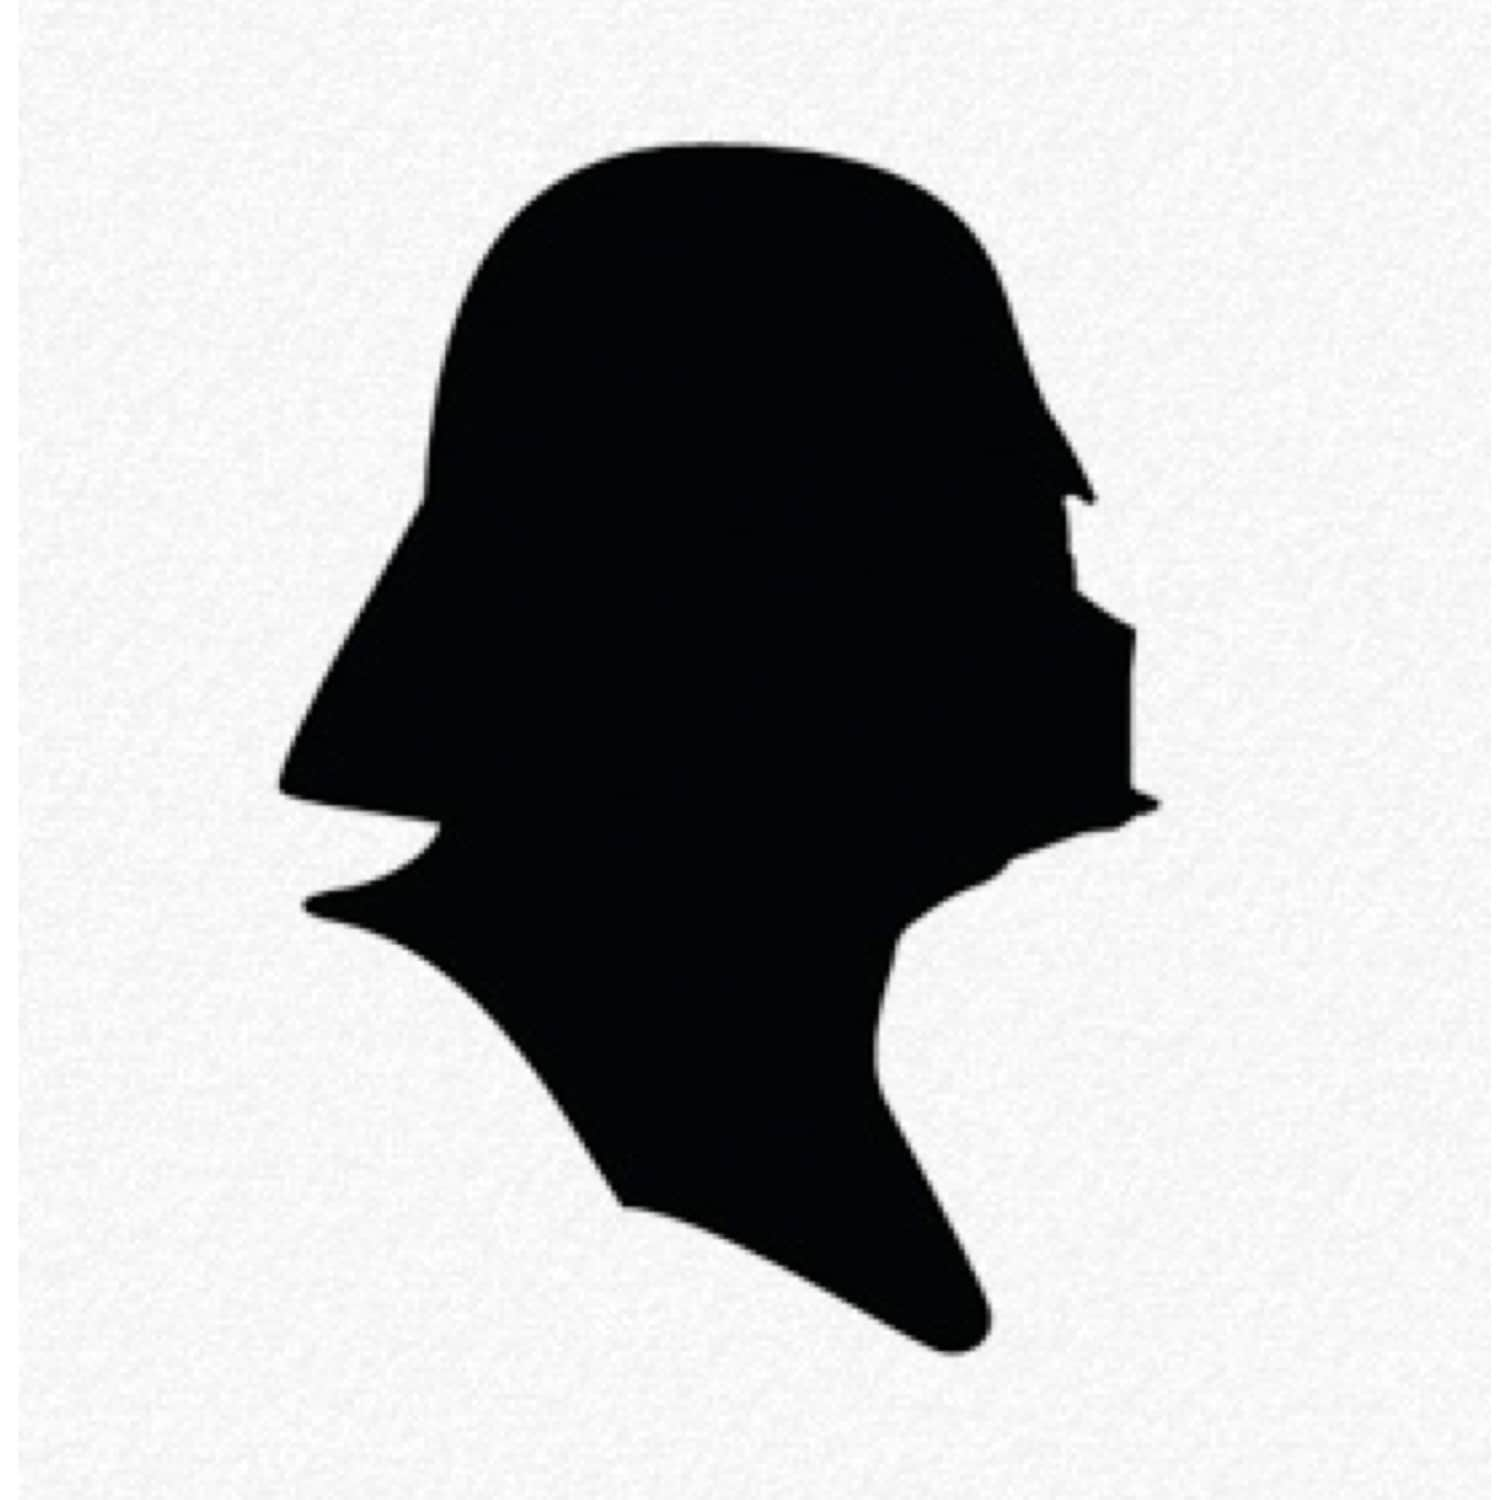 Pack Of 3 Darth Vader Stencils Made From 4 Ply Mat Board